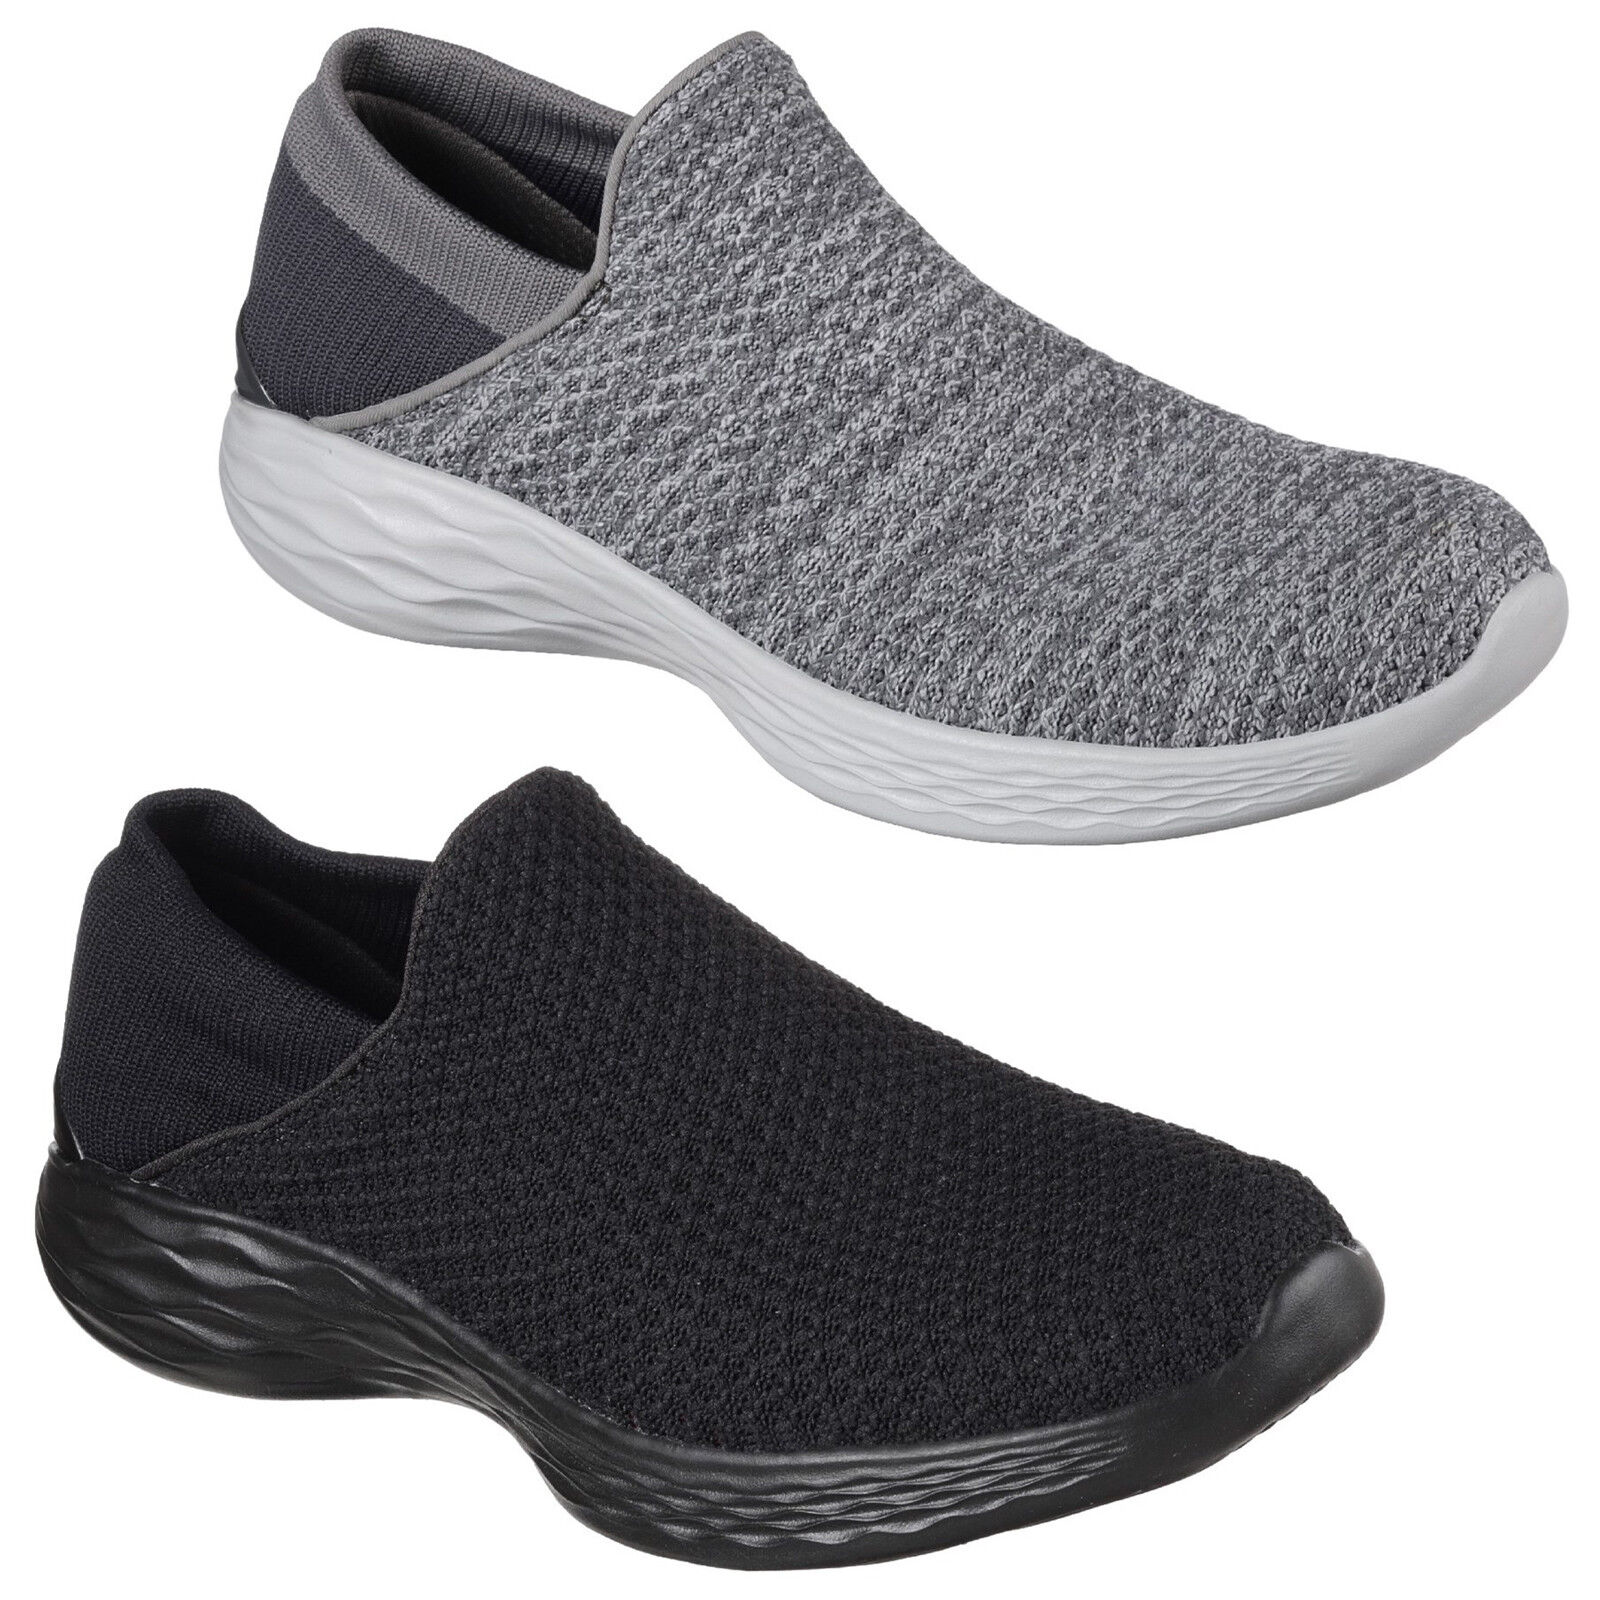 Skechers You Trainers Womens Memory Foam Slip On Sports Walking Sneakers shoes